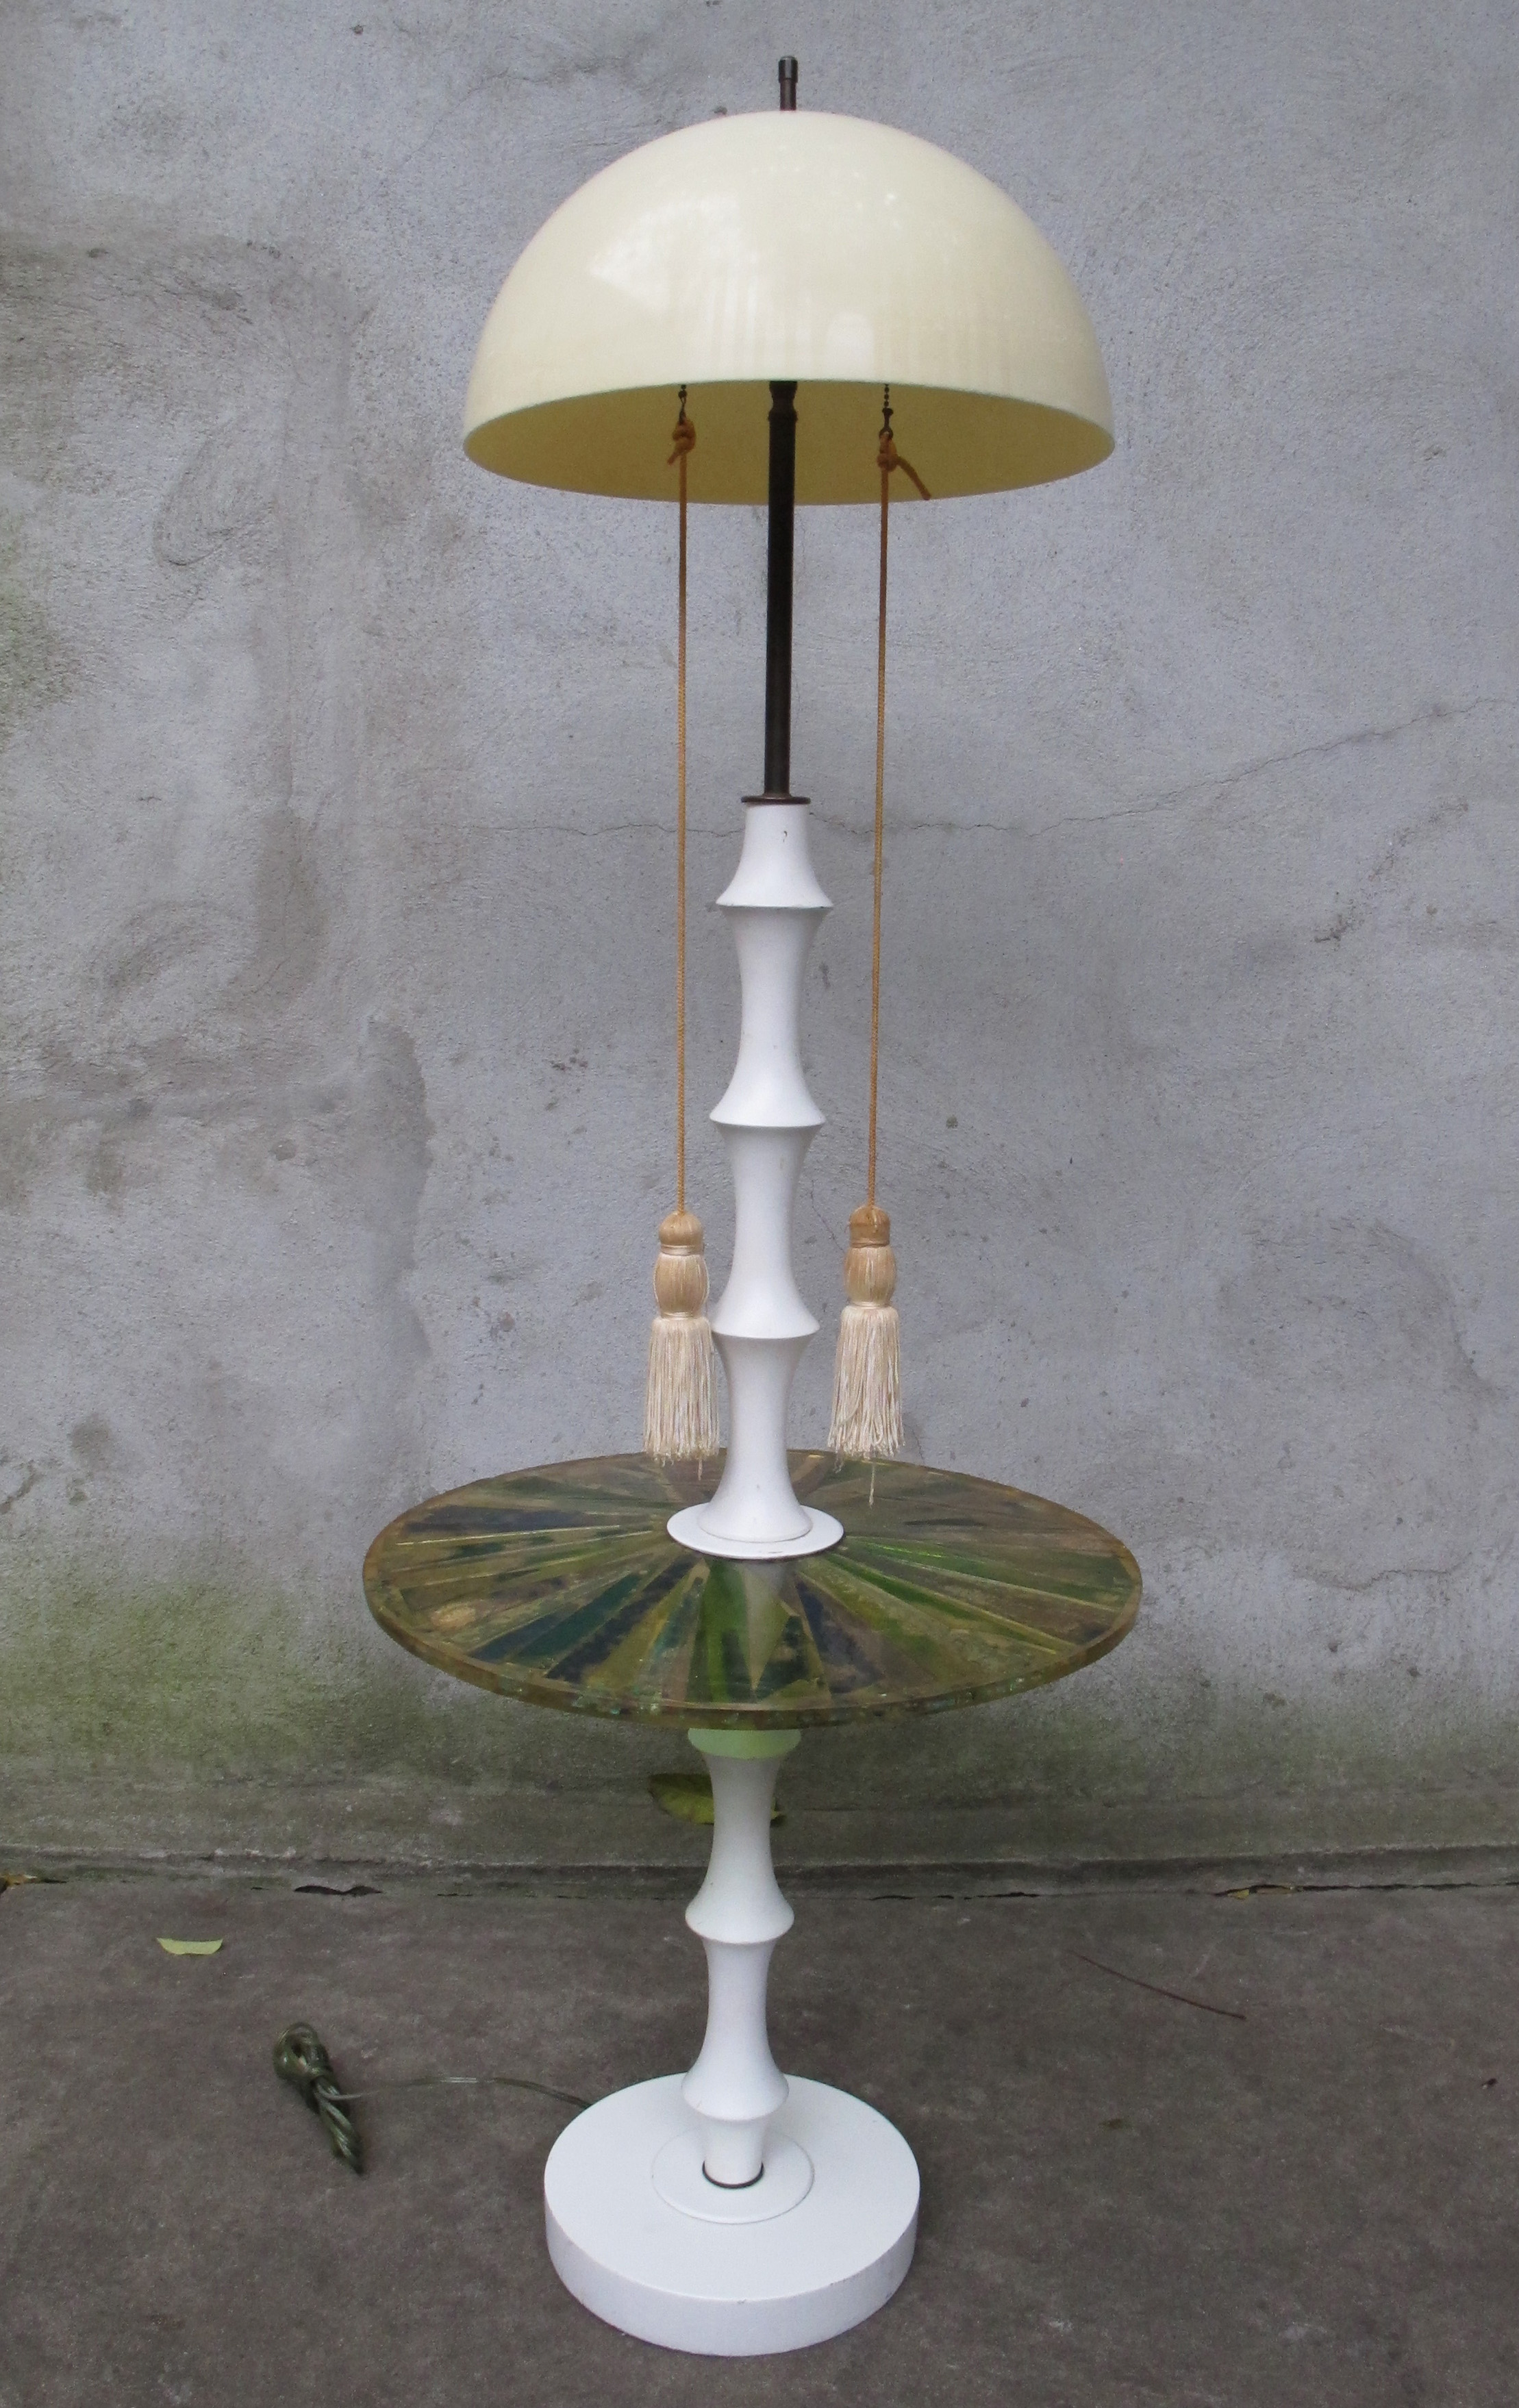 ECLECTIC MID CENTURY STANDING LAMP WITH ACRYLIC TABLE TOP